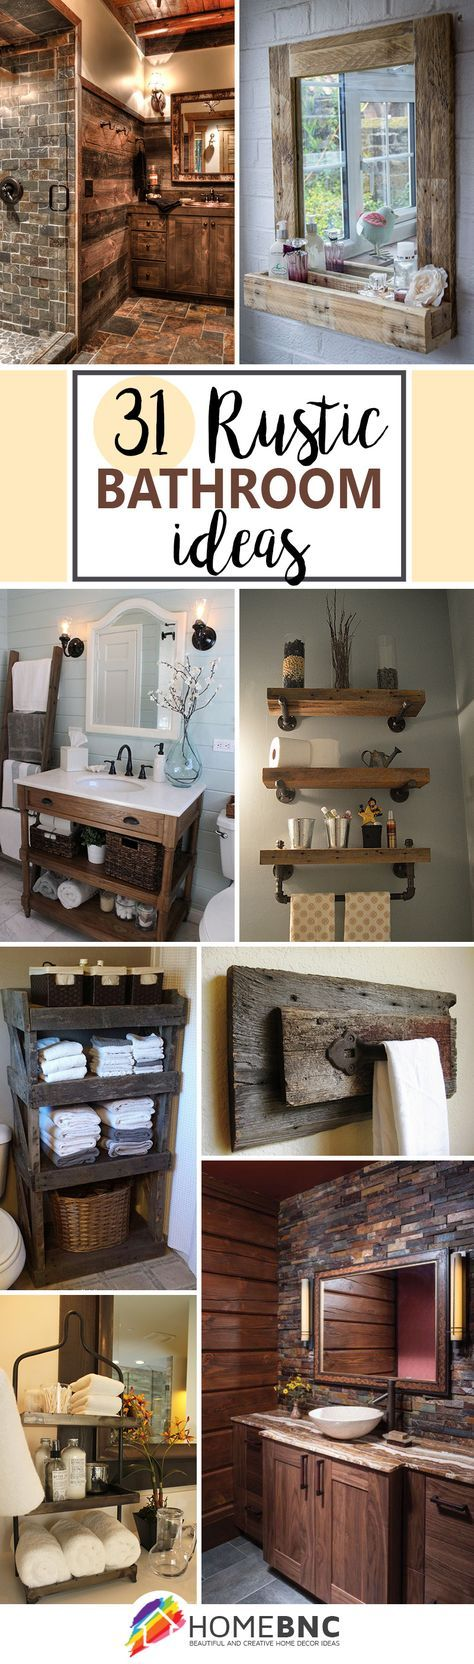 50 Gorgeous Rustic Bathroom Decor Ideas To Try At Home Rustic Bathrooms Rustic Bathroom Decor Bathroom Design Decor